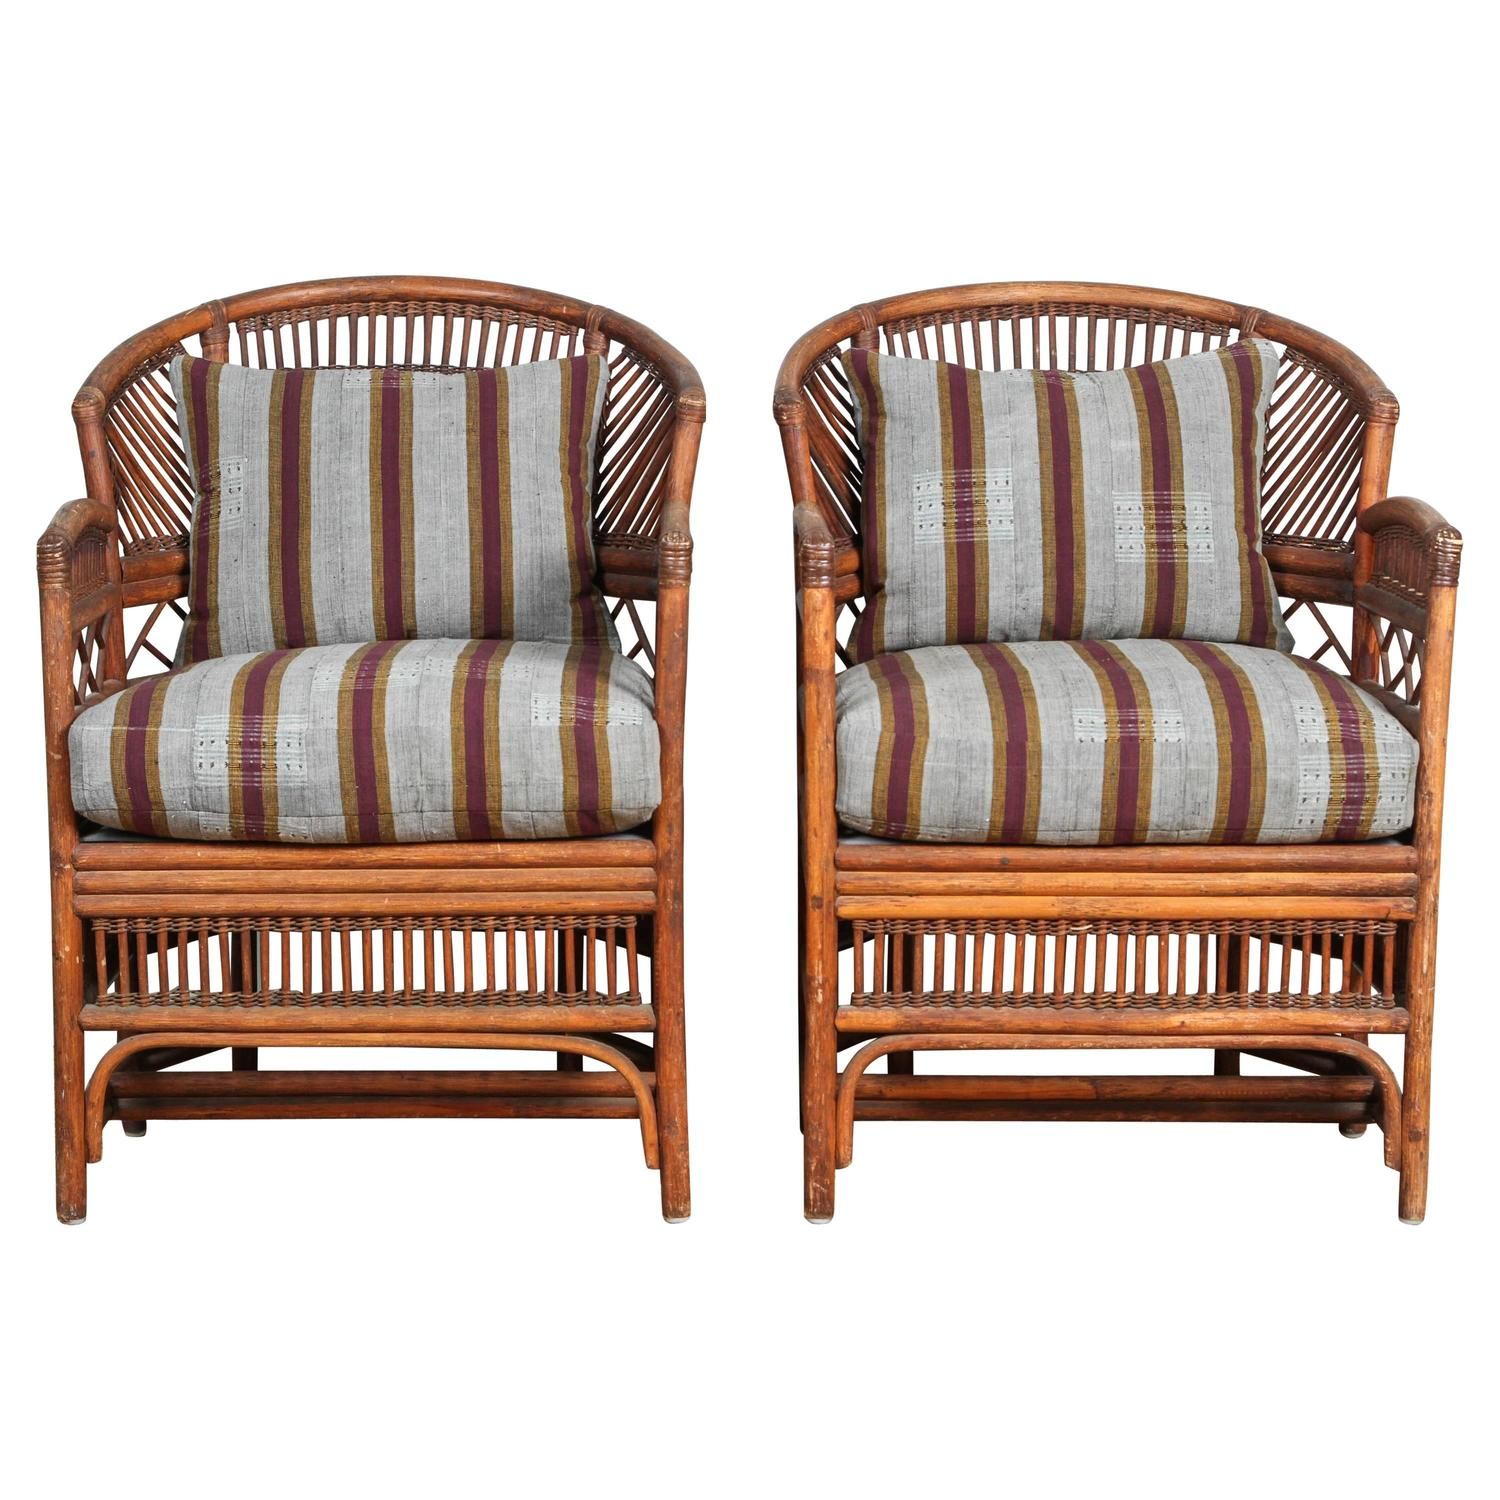 A Pair Of Period French Chairs With Missoni Fabric At 1stdibs: Pair Of Rattan Chairs With Vintage African Textile